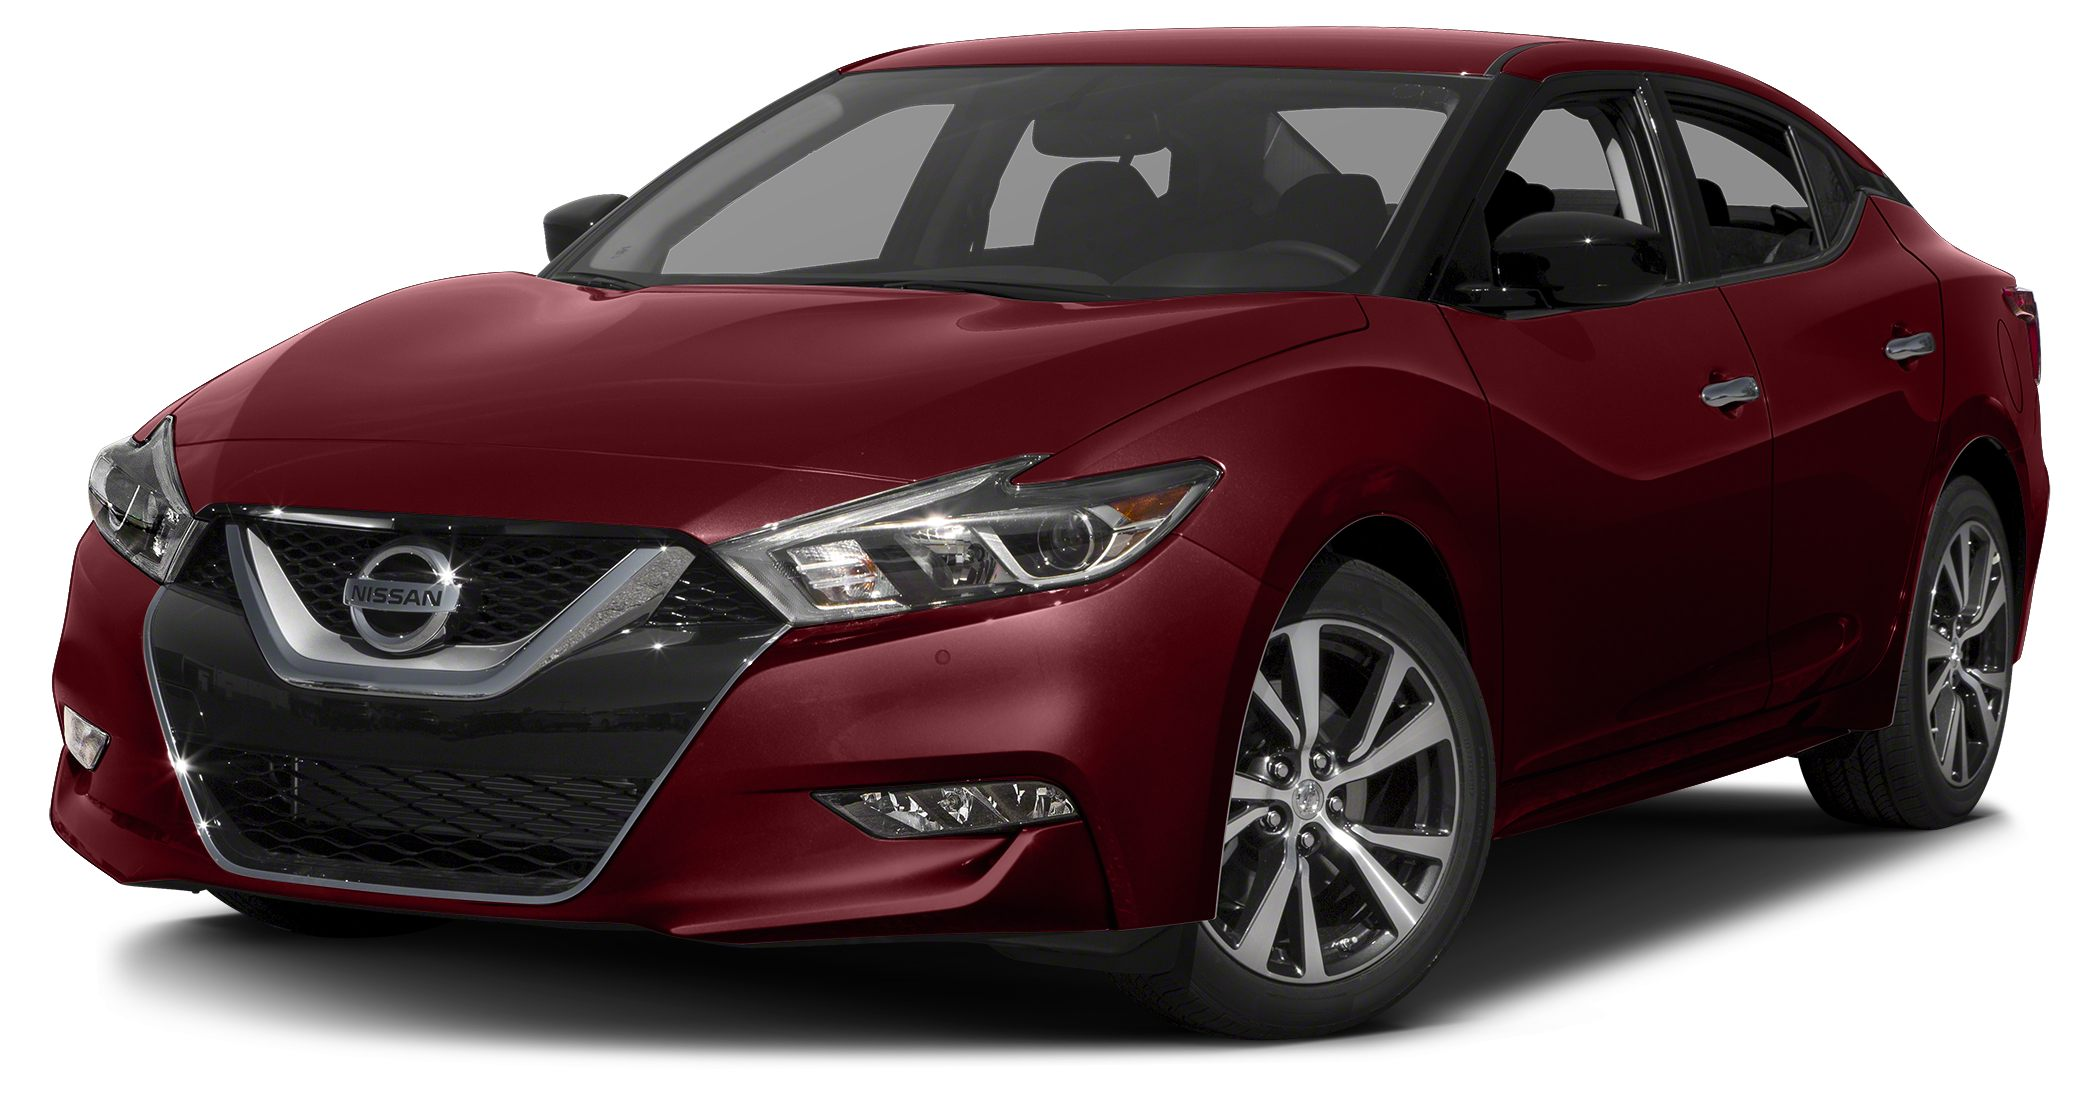 2016 Nissan Maxima 35 S 35L V6 DOHC 24V Red ABS brakes Alloy wheels Auto-dimming Rear-View m